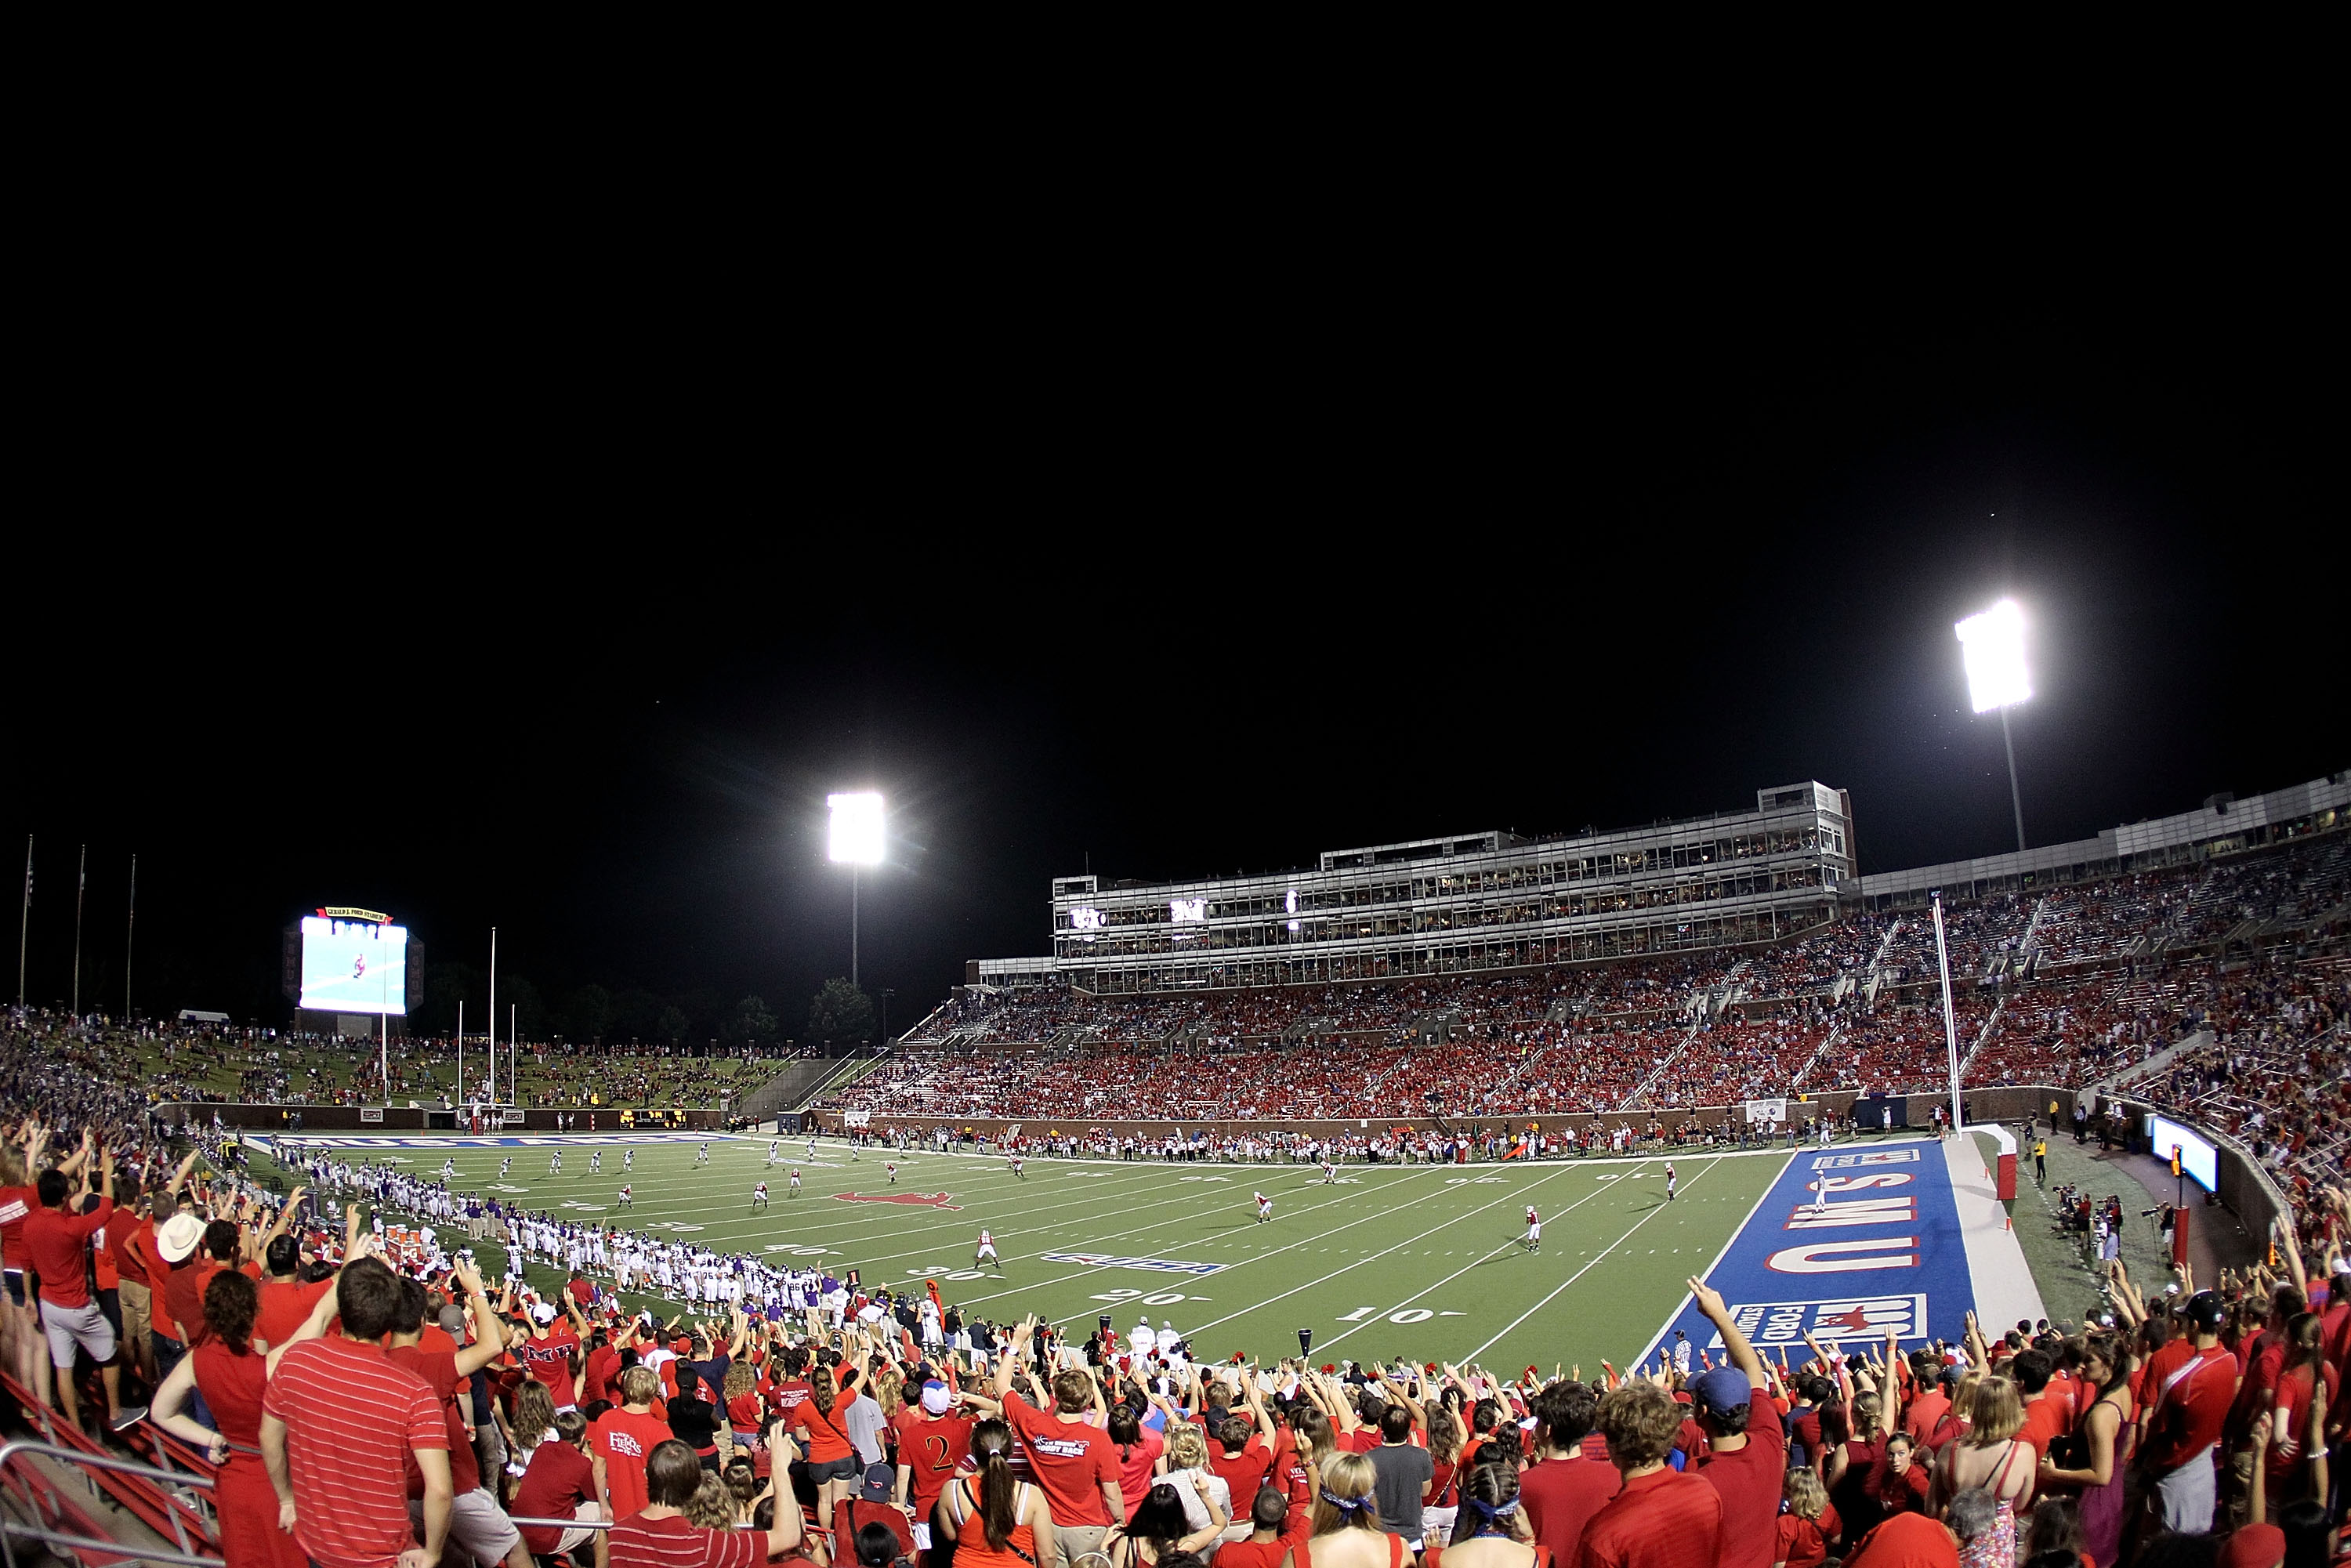 DALLAS - SEPTEMBER 24:  A general view of play between the TCU Horned Frogs and the SMU Mustangs at Gerald J. Ford Stadium on September 24, 2010 in Dallas, Texas.  (Photo by Ronald Martinez/Getty Images)